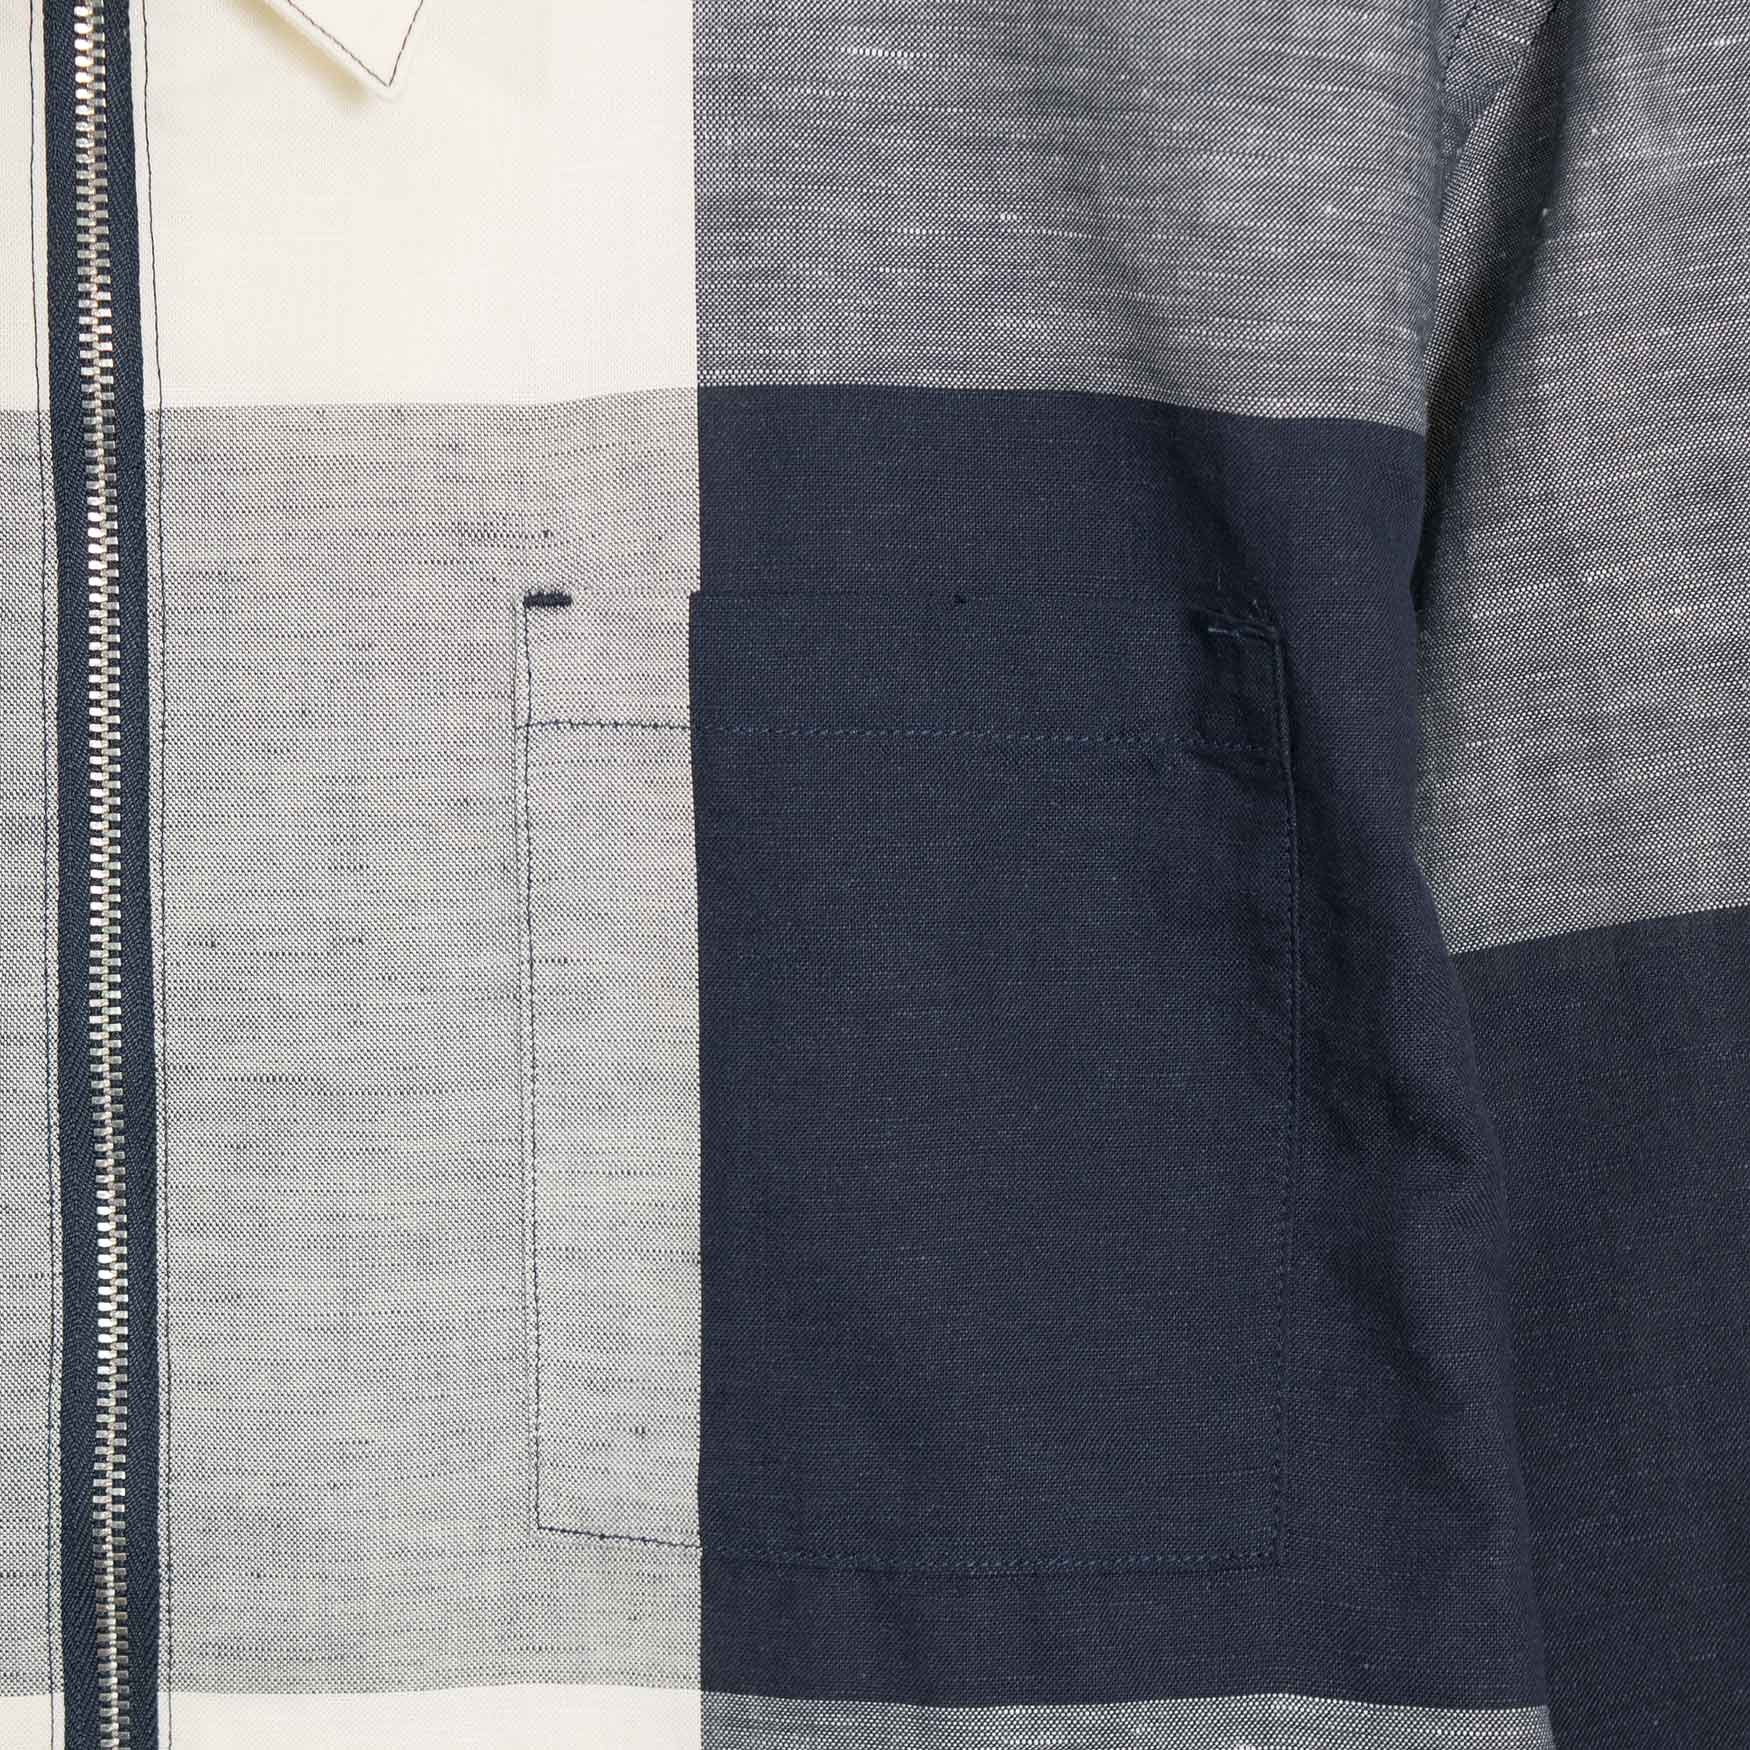 YMC Bowie Check Linen Zip Shirt - Ecru/Navy  - CARTOCON